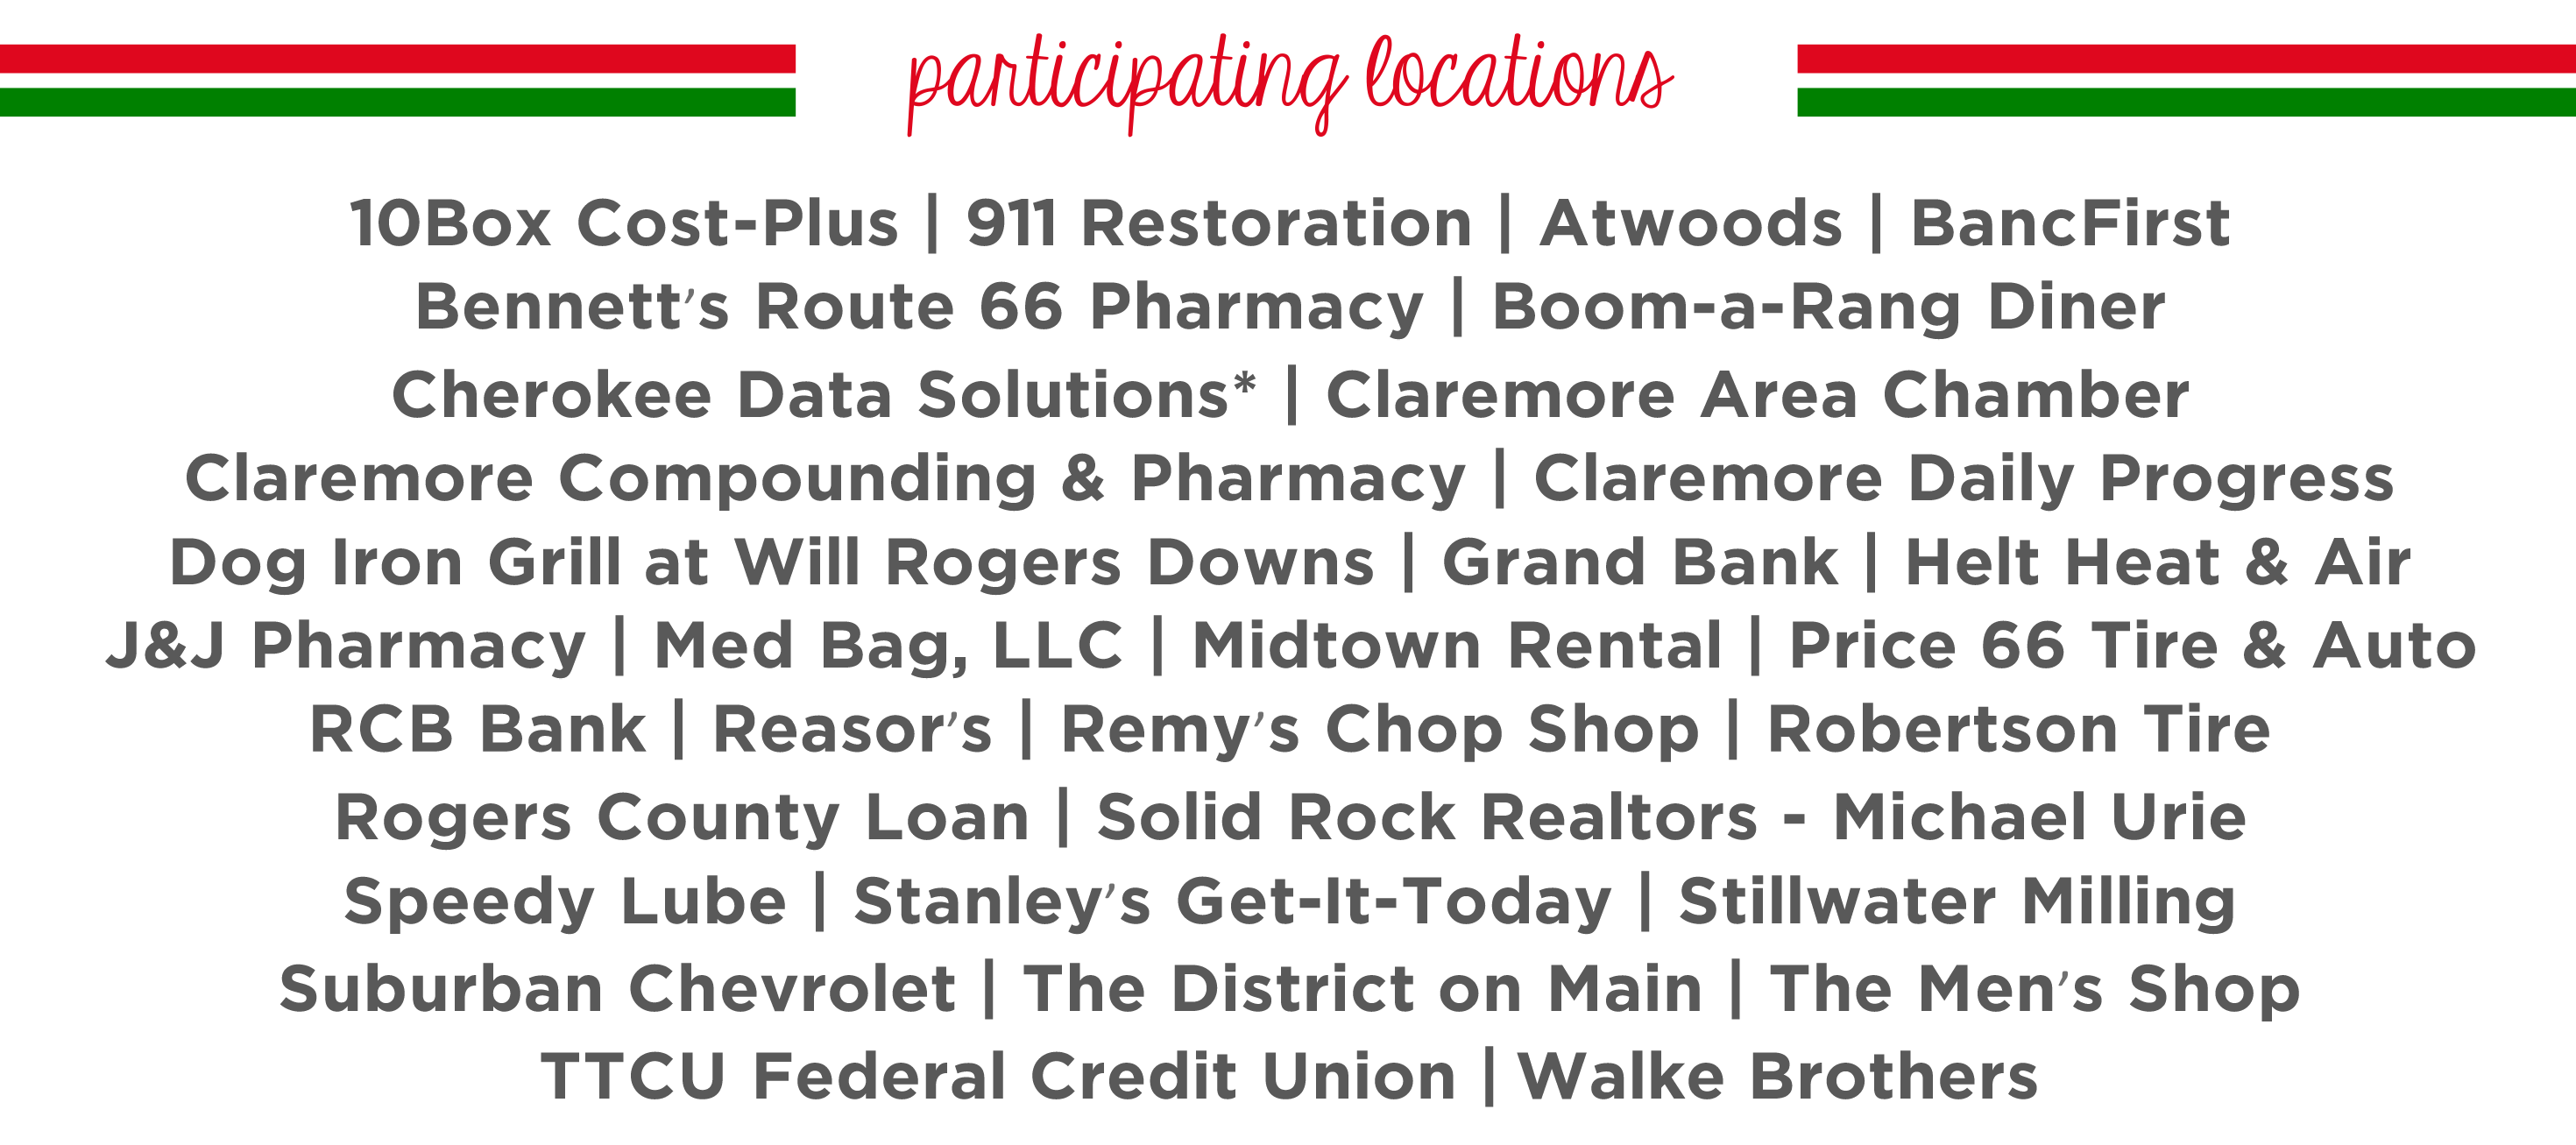 2019 Santa Cash Locations